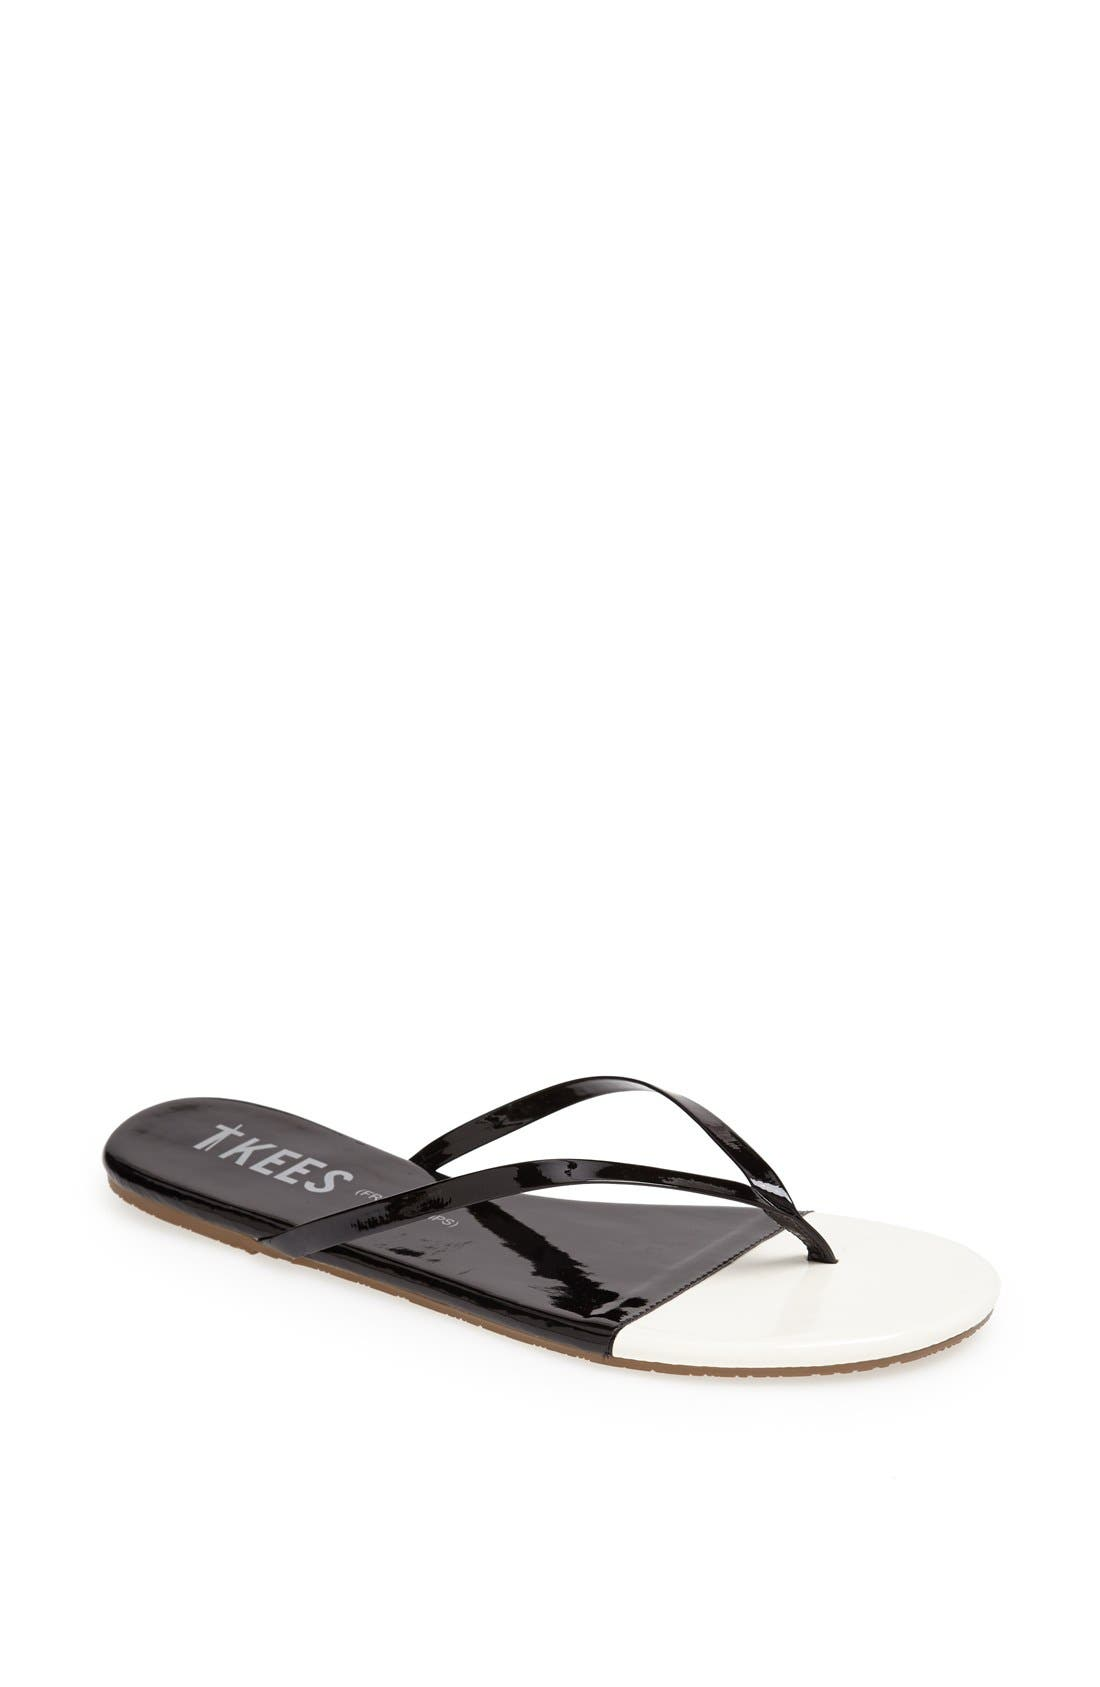 Alternate Image 1 Selected - TKEES 'French Tips' Flip Flop